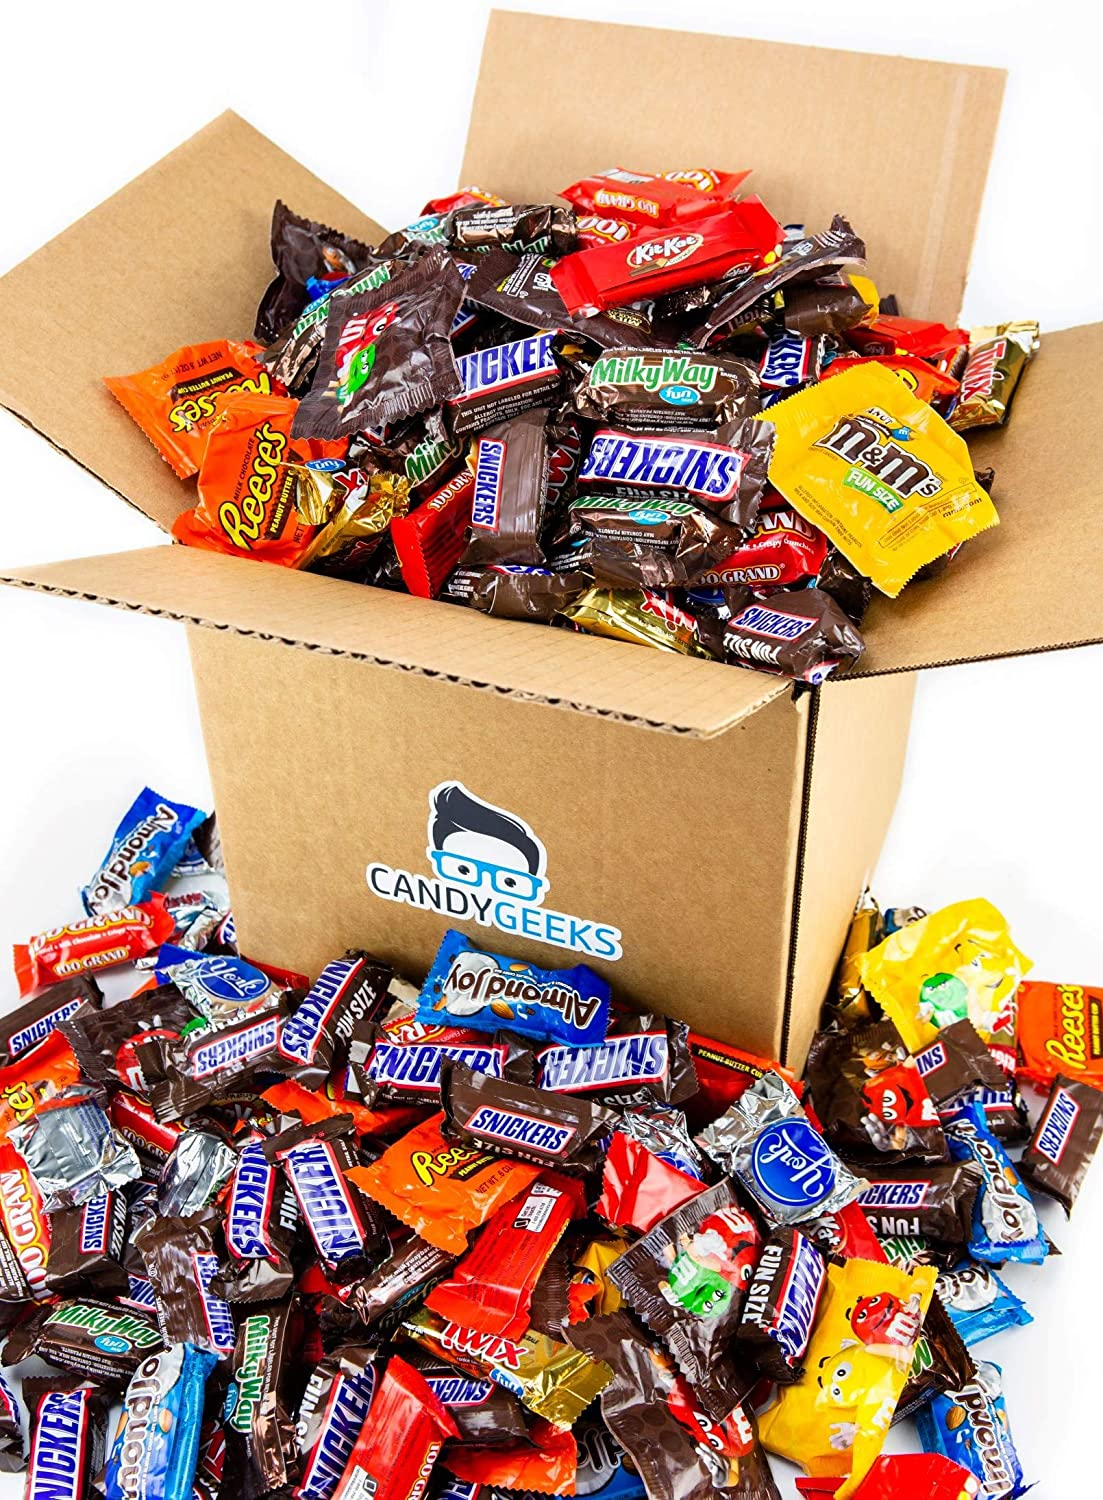 Candy Geeks 'Funsize' All Chocolate Bulk Candy Boxes || 8lb Box Of Fun Size Chocolate And Candy Varieties